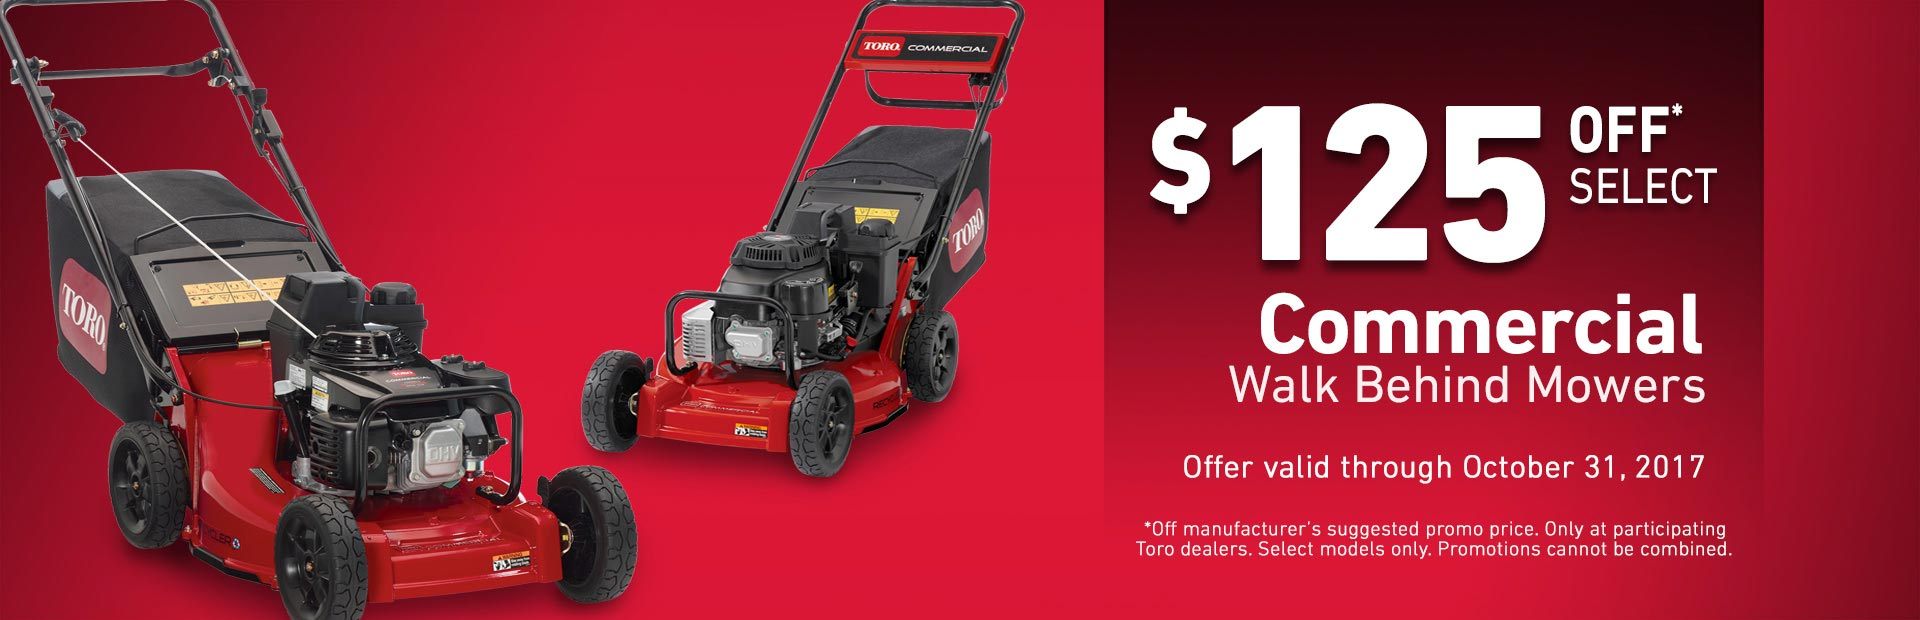 Toro: $125 Off Select Heavy Duty Recycler Mowers